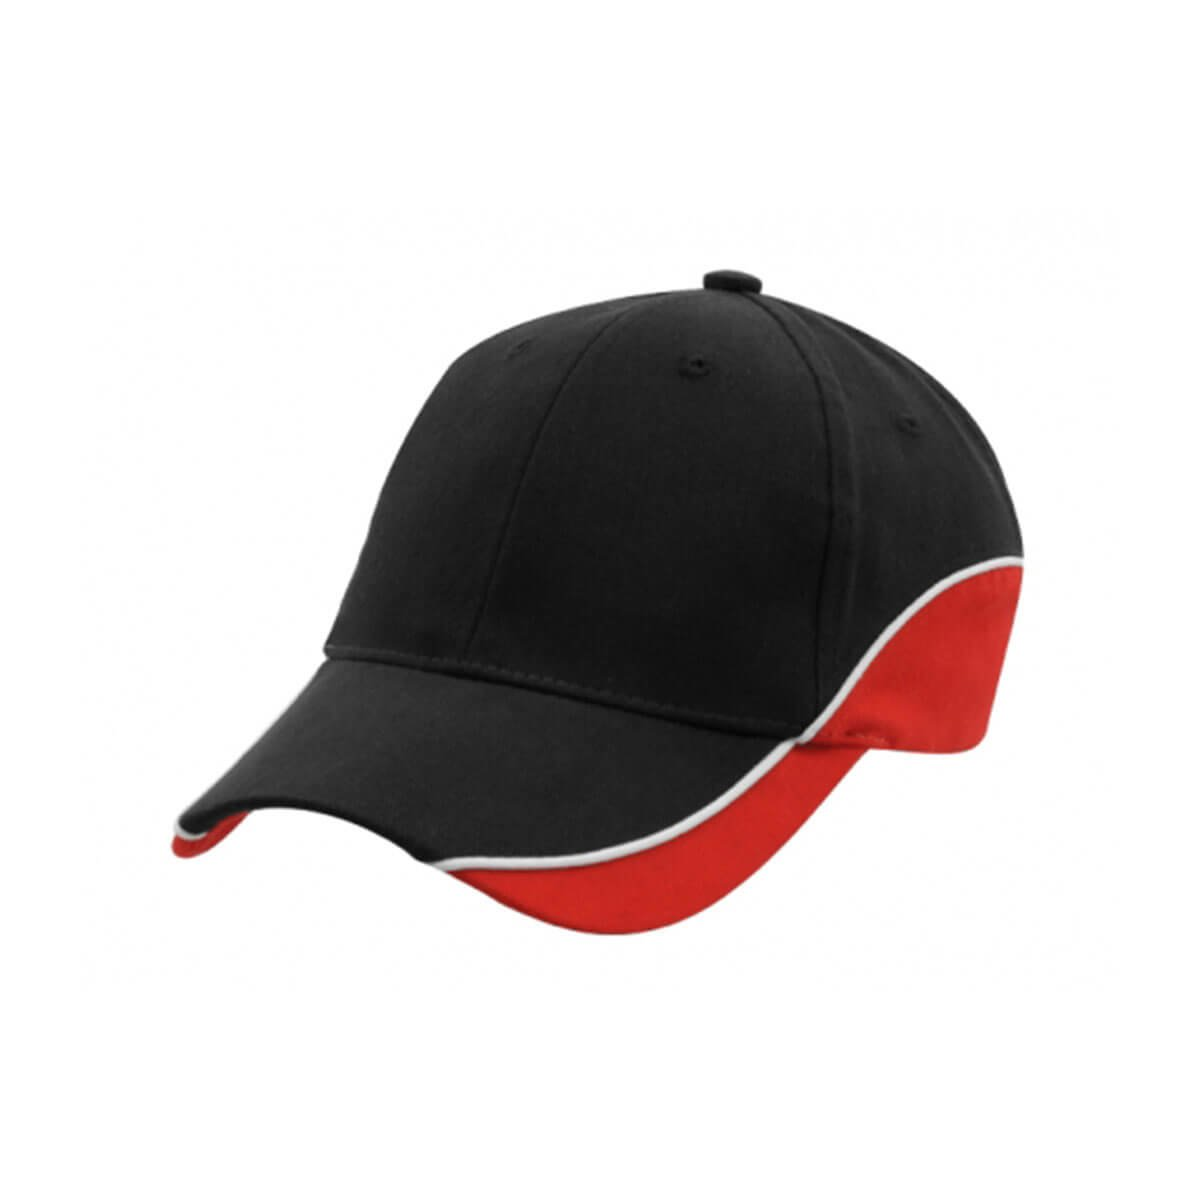 Adventure Cap-Black / White / Red